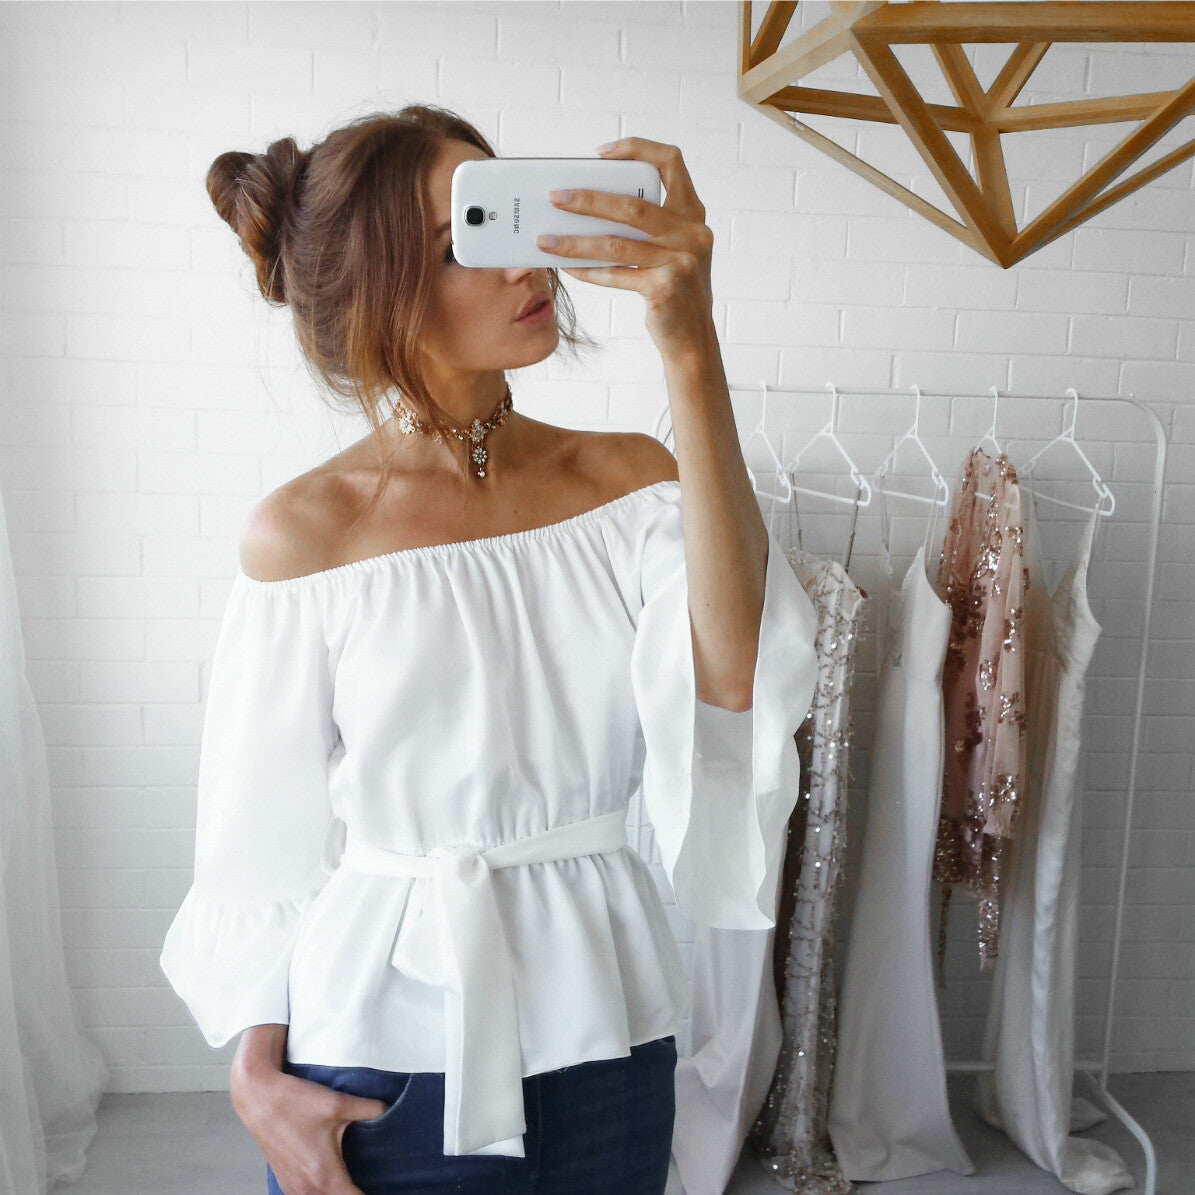 Off The Shoulder Chiffon Top, top, VIVIMARKS